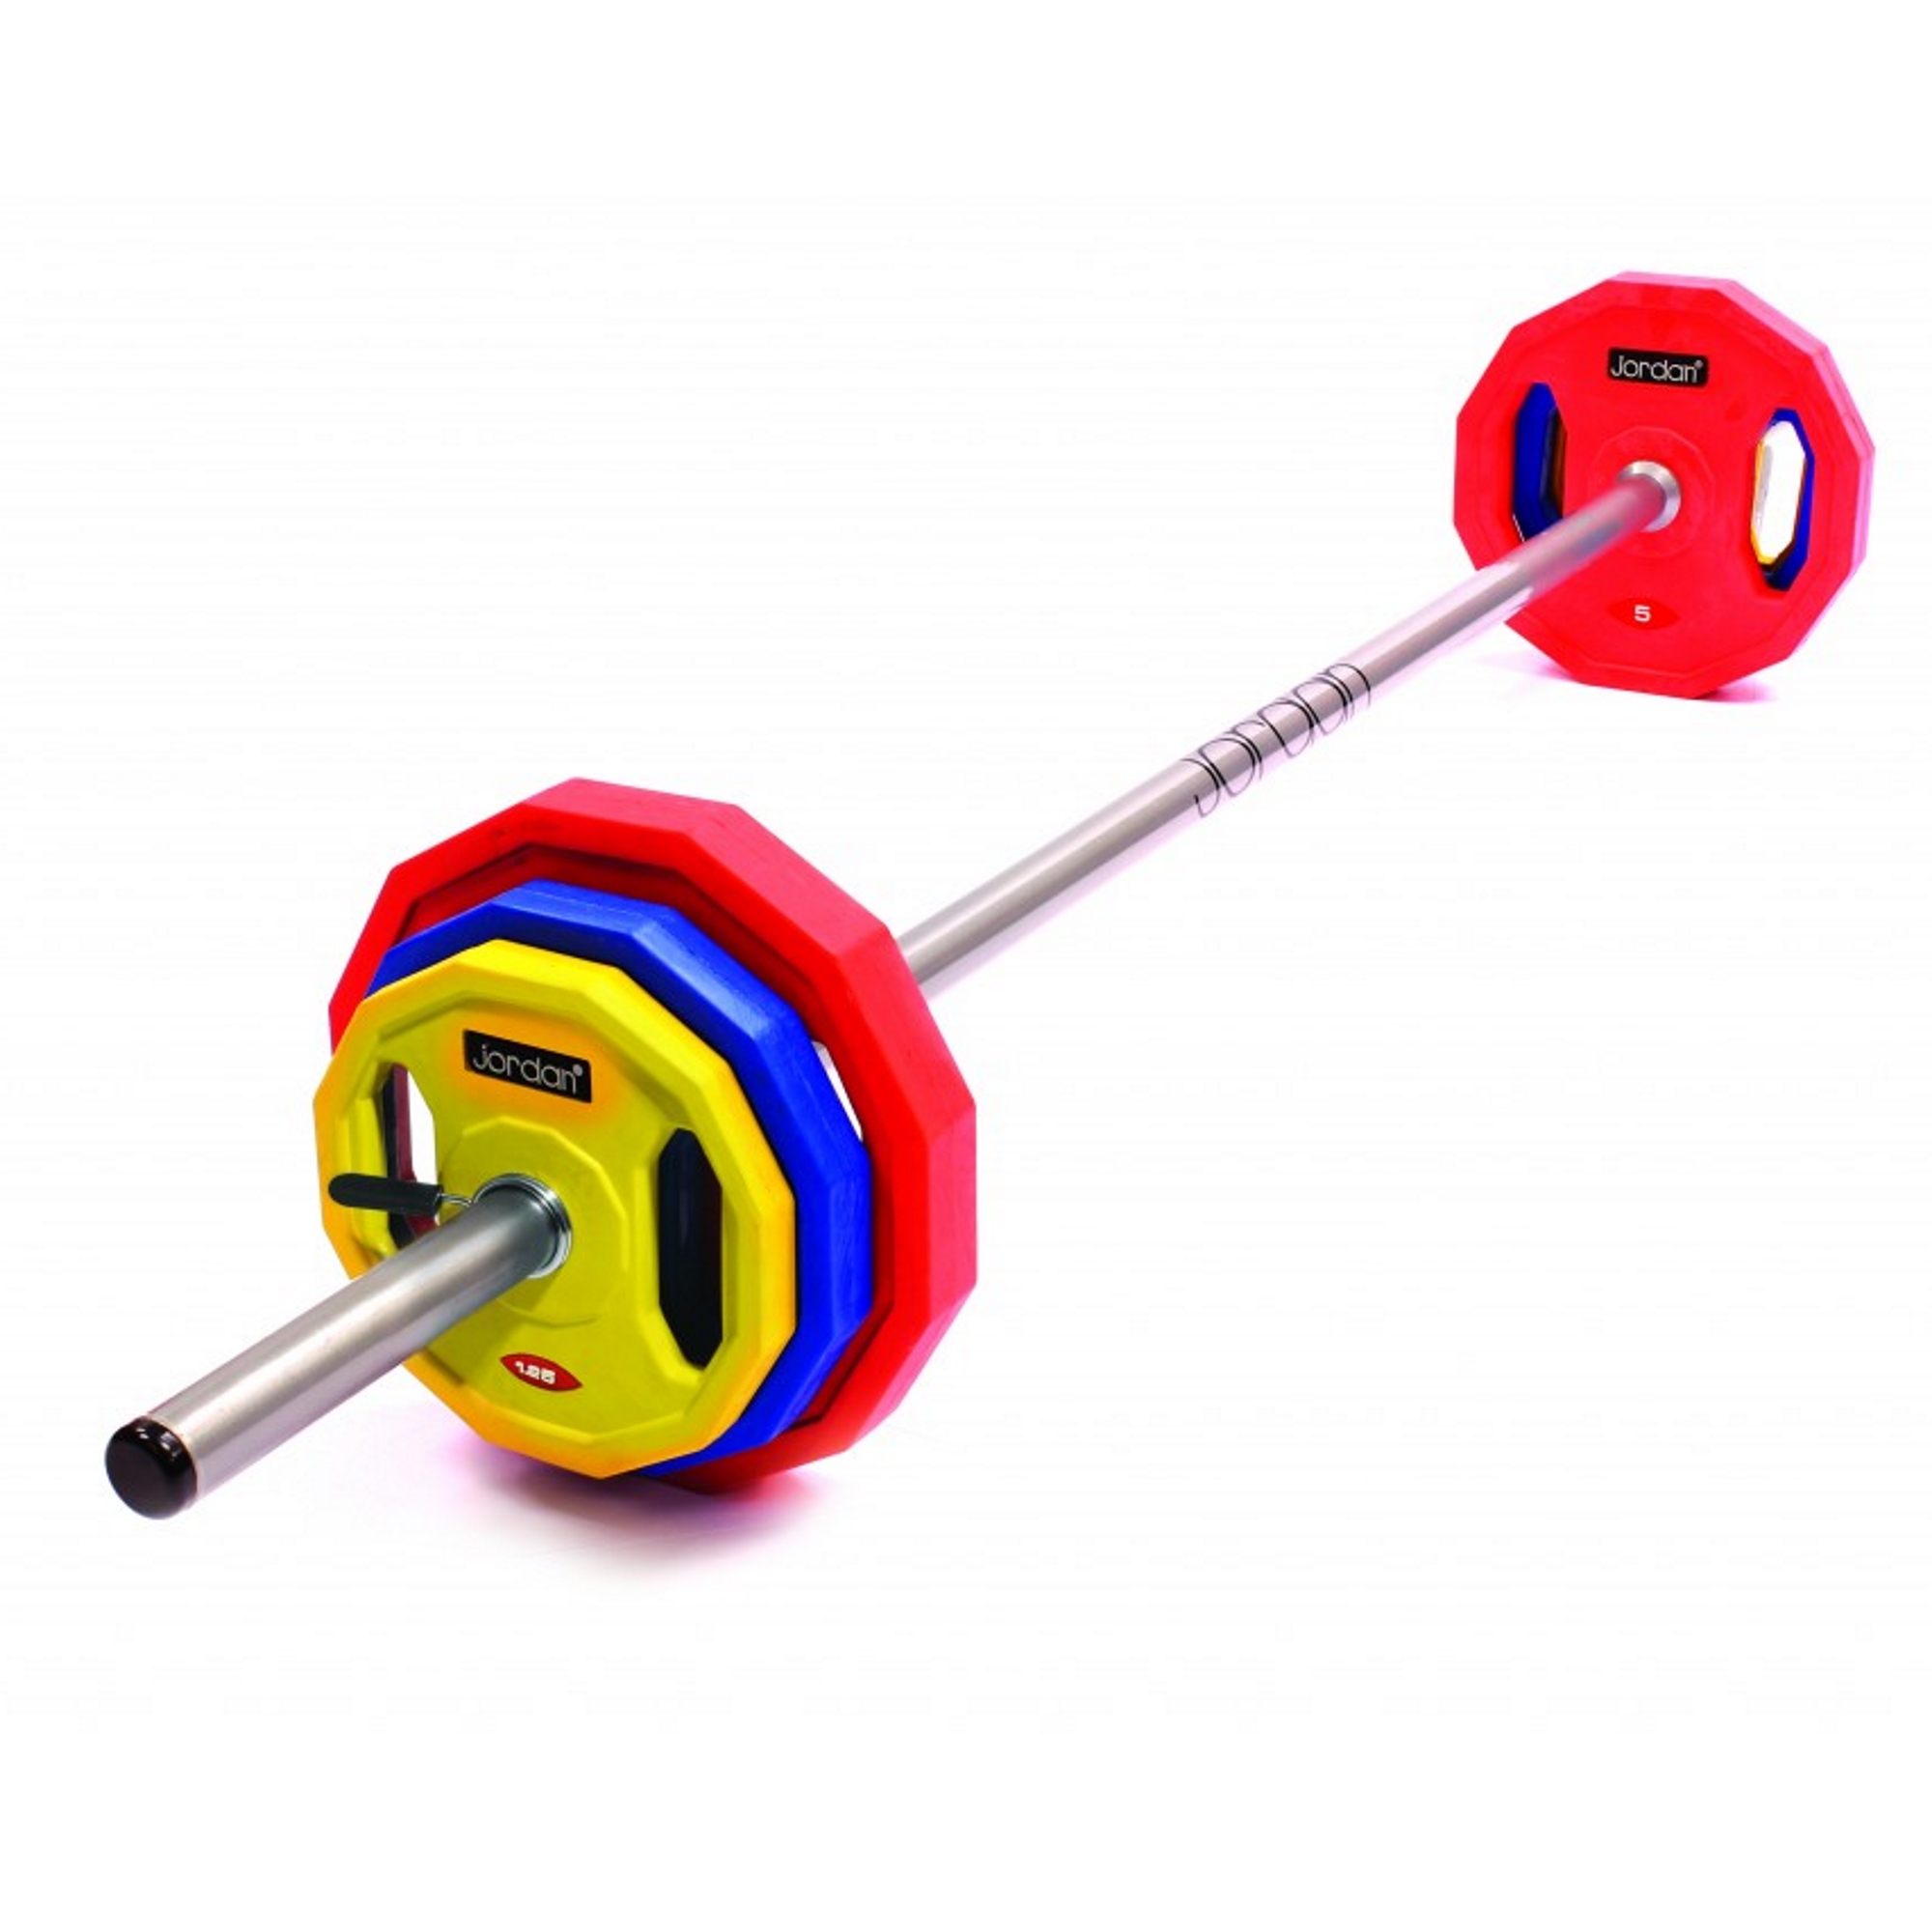 Jordan 20kg Studio Barbell Set